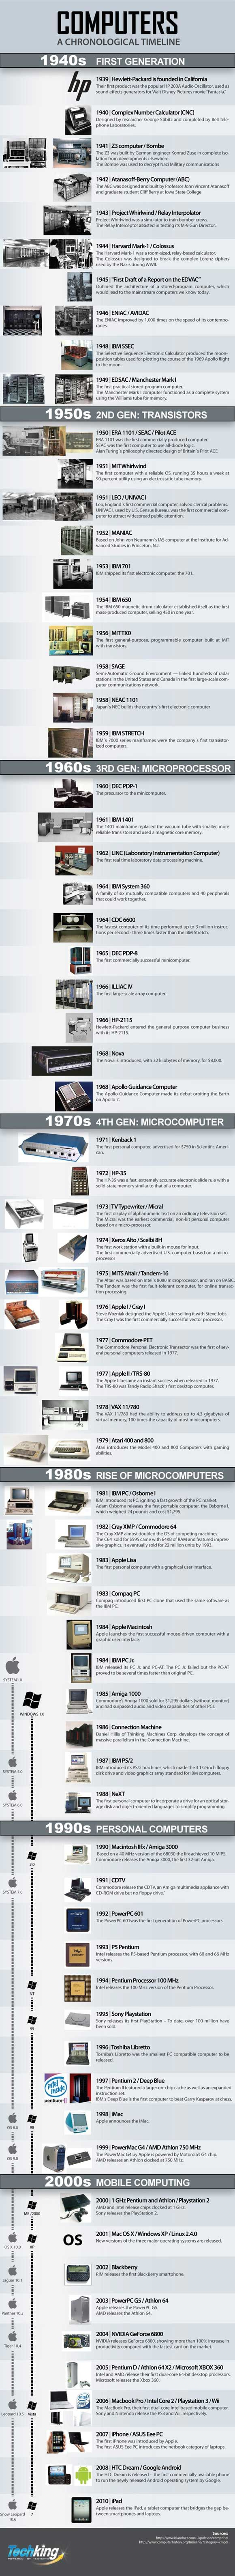 The history of computers, from 1938 to 2010, all illustrated via this informative infographic. Enjoy!  [Source: Test King]